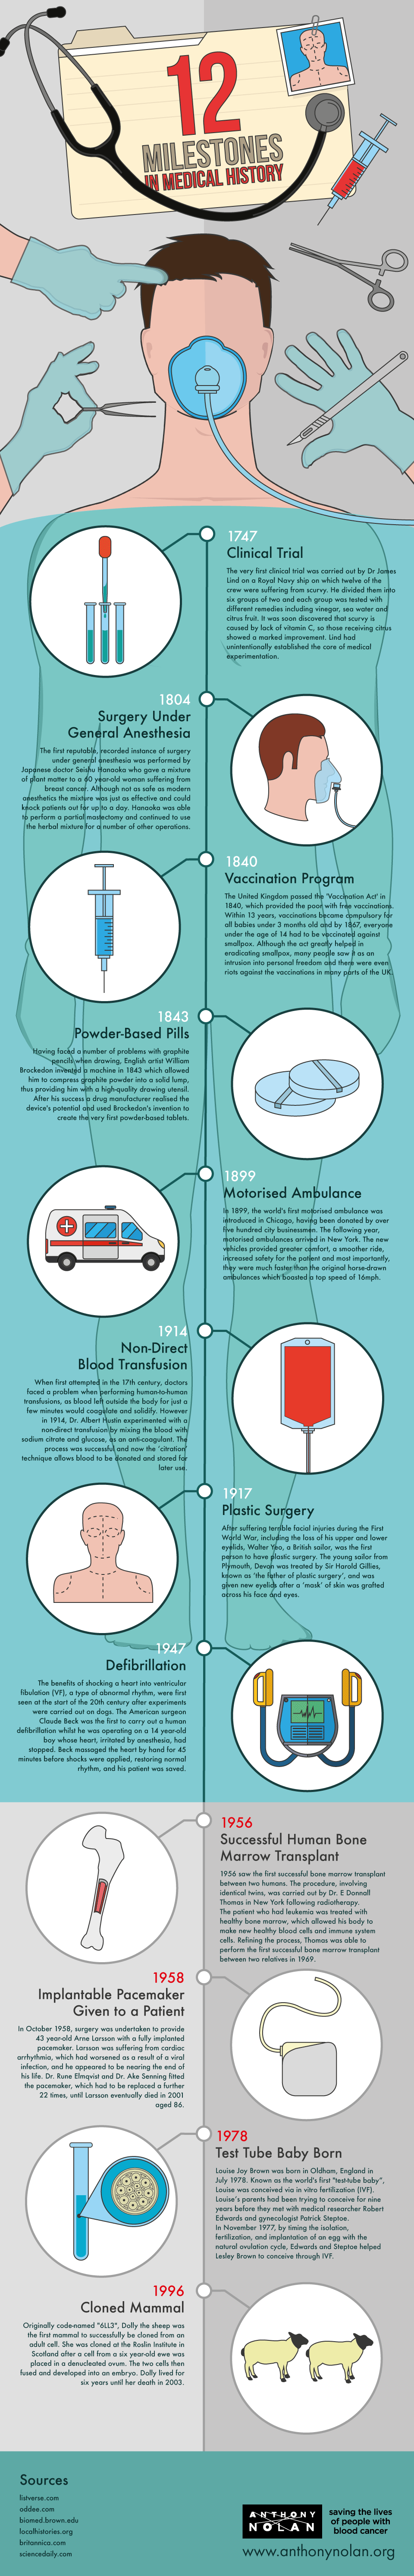 12 Milestones In Medical History